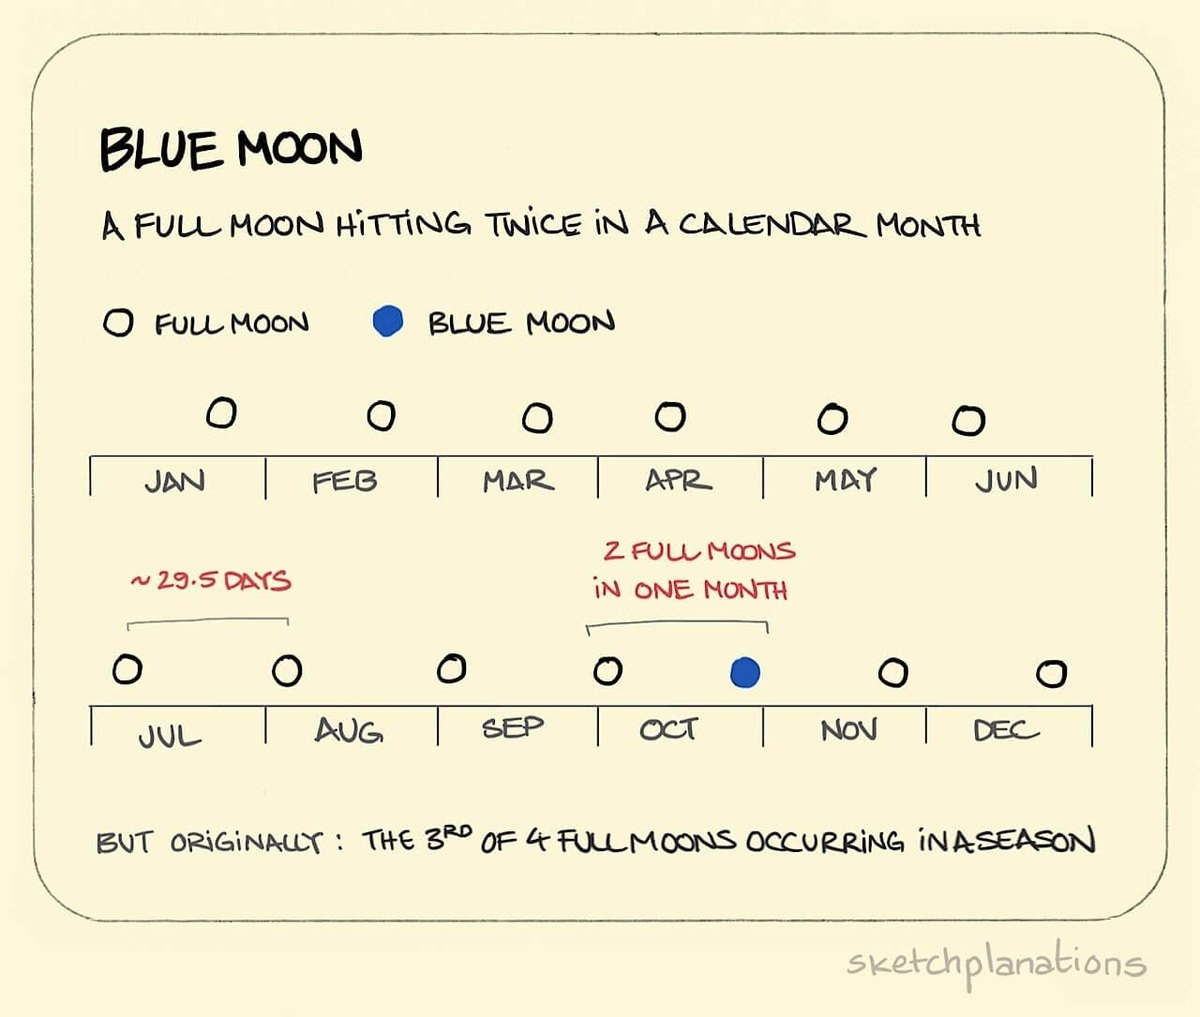 """Sketchplanations On Twitter: """"blue Moon. The Popular Definition Is A A Calendar Month Definition"""